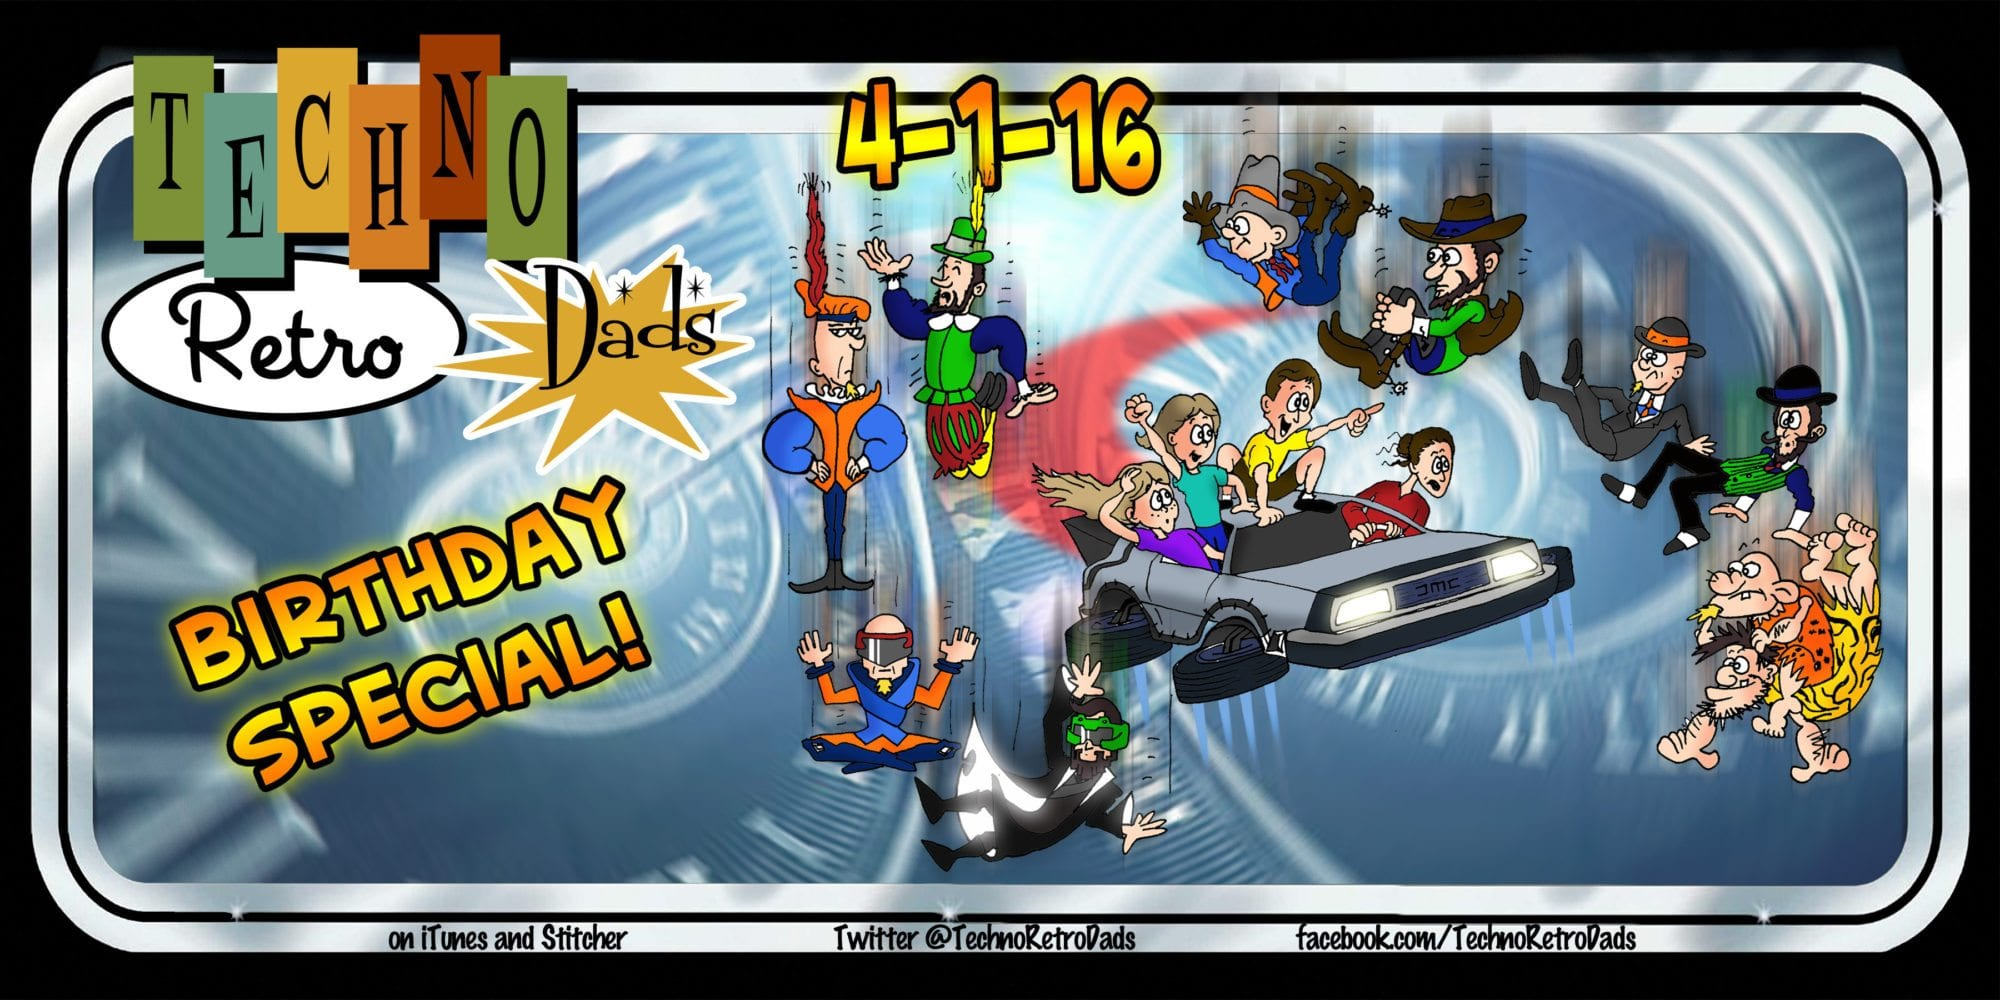 SPECIAL REPORT: TechnoRetro Dads are Missing